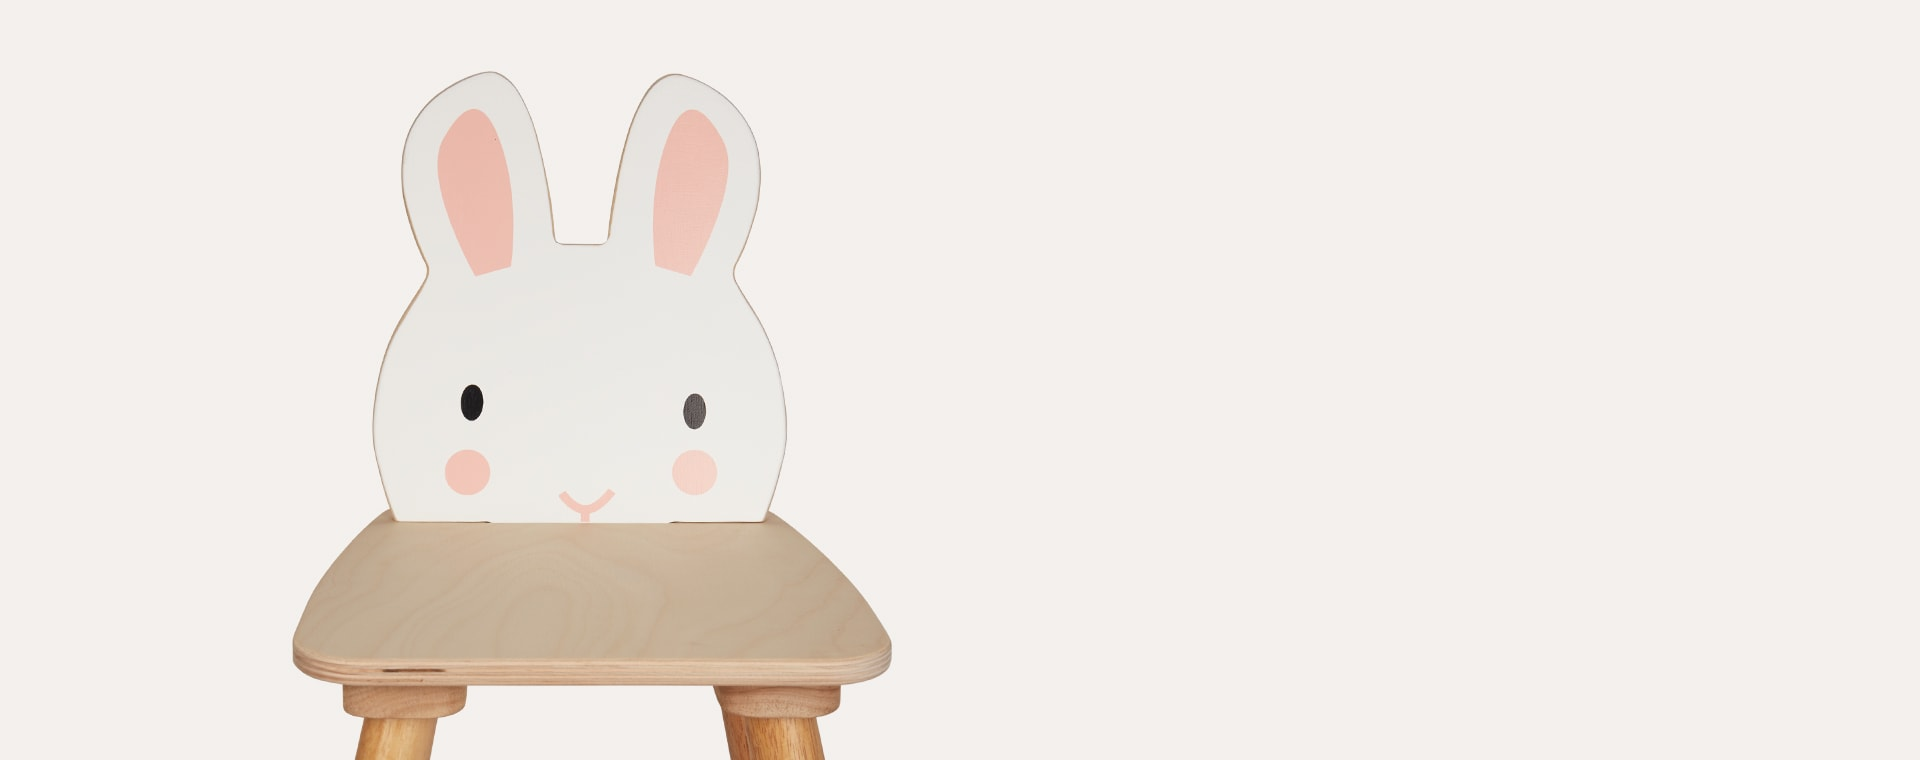 Rabbit Tender Leaf Toys Forest Chair